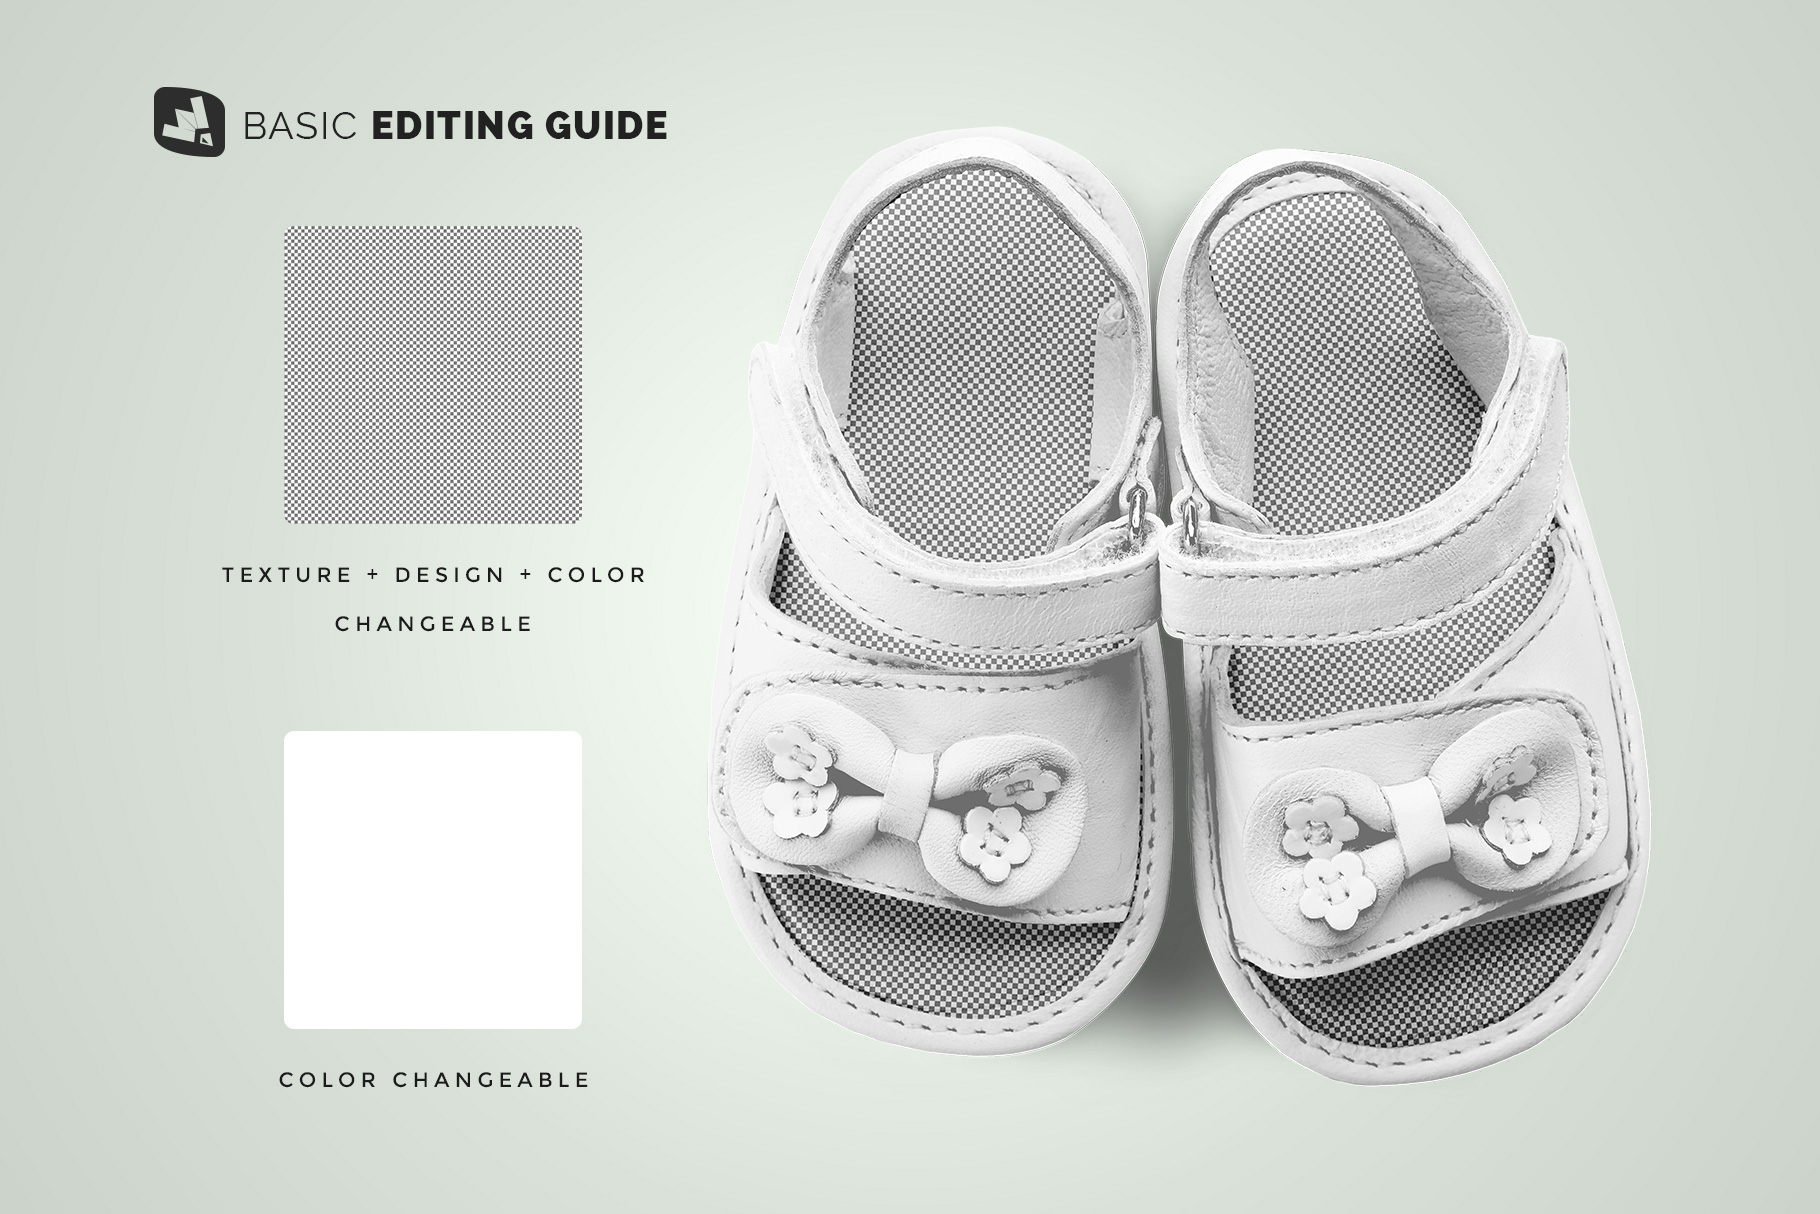 editability of the topview baby sandals with bow mockup